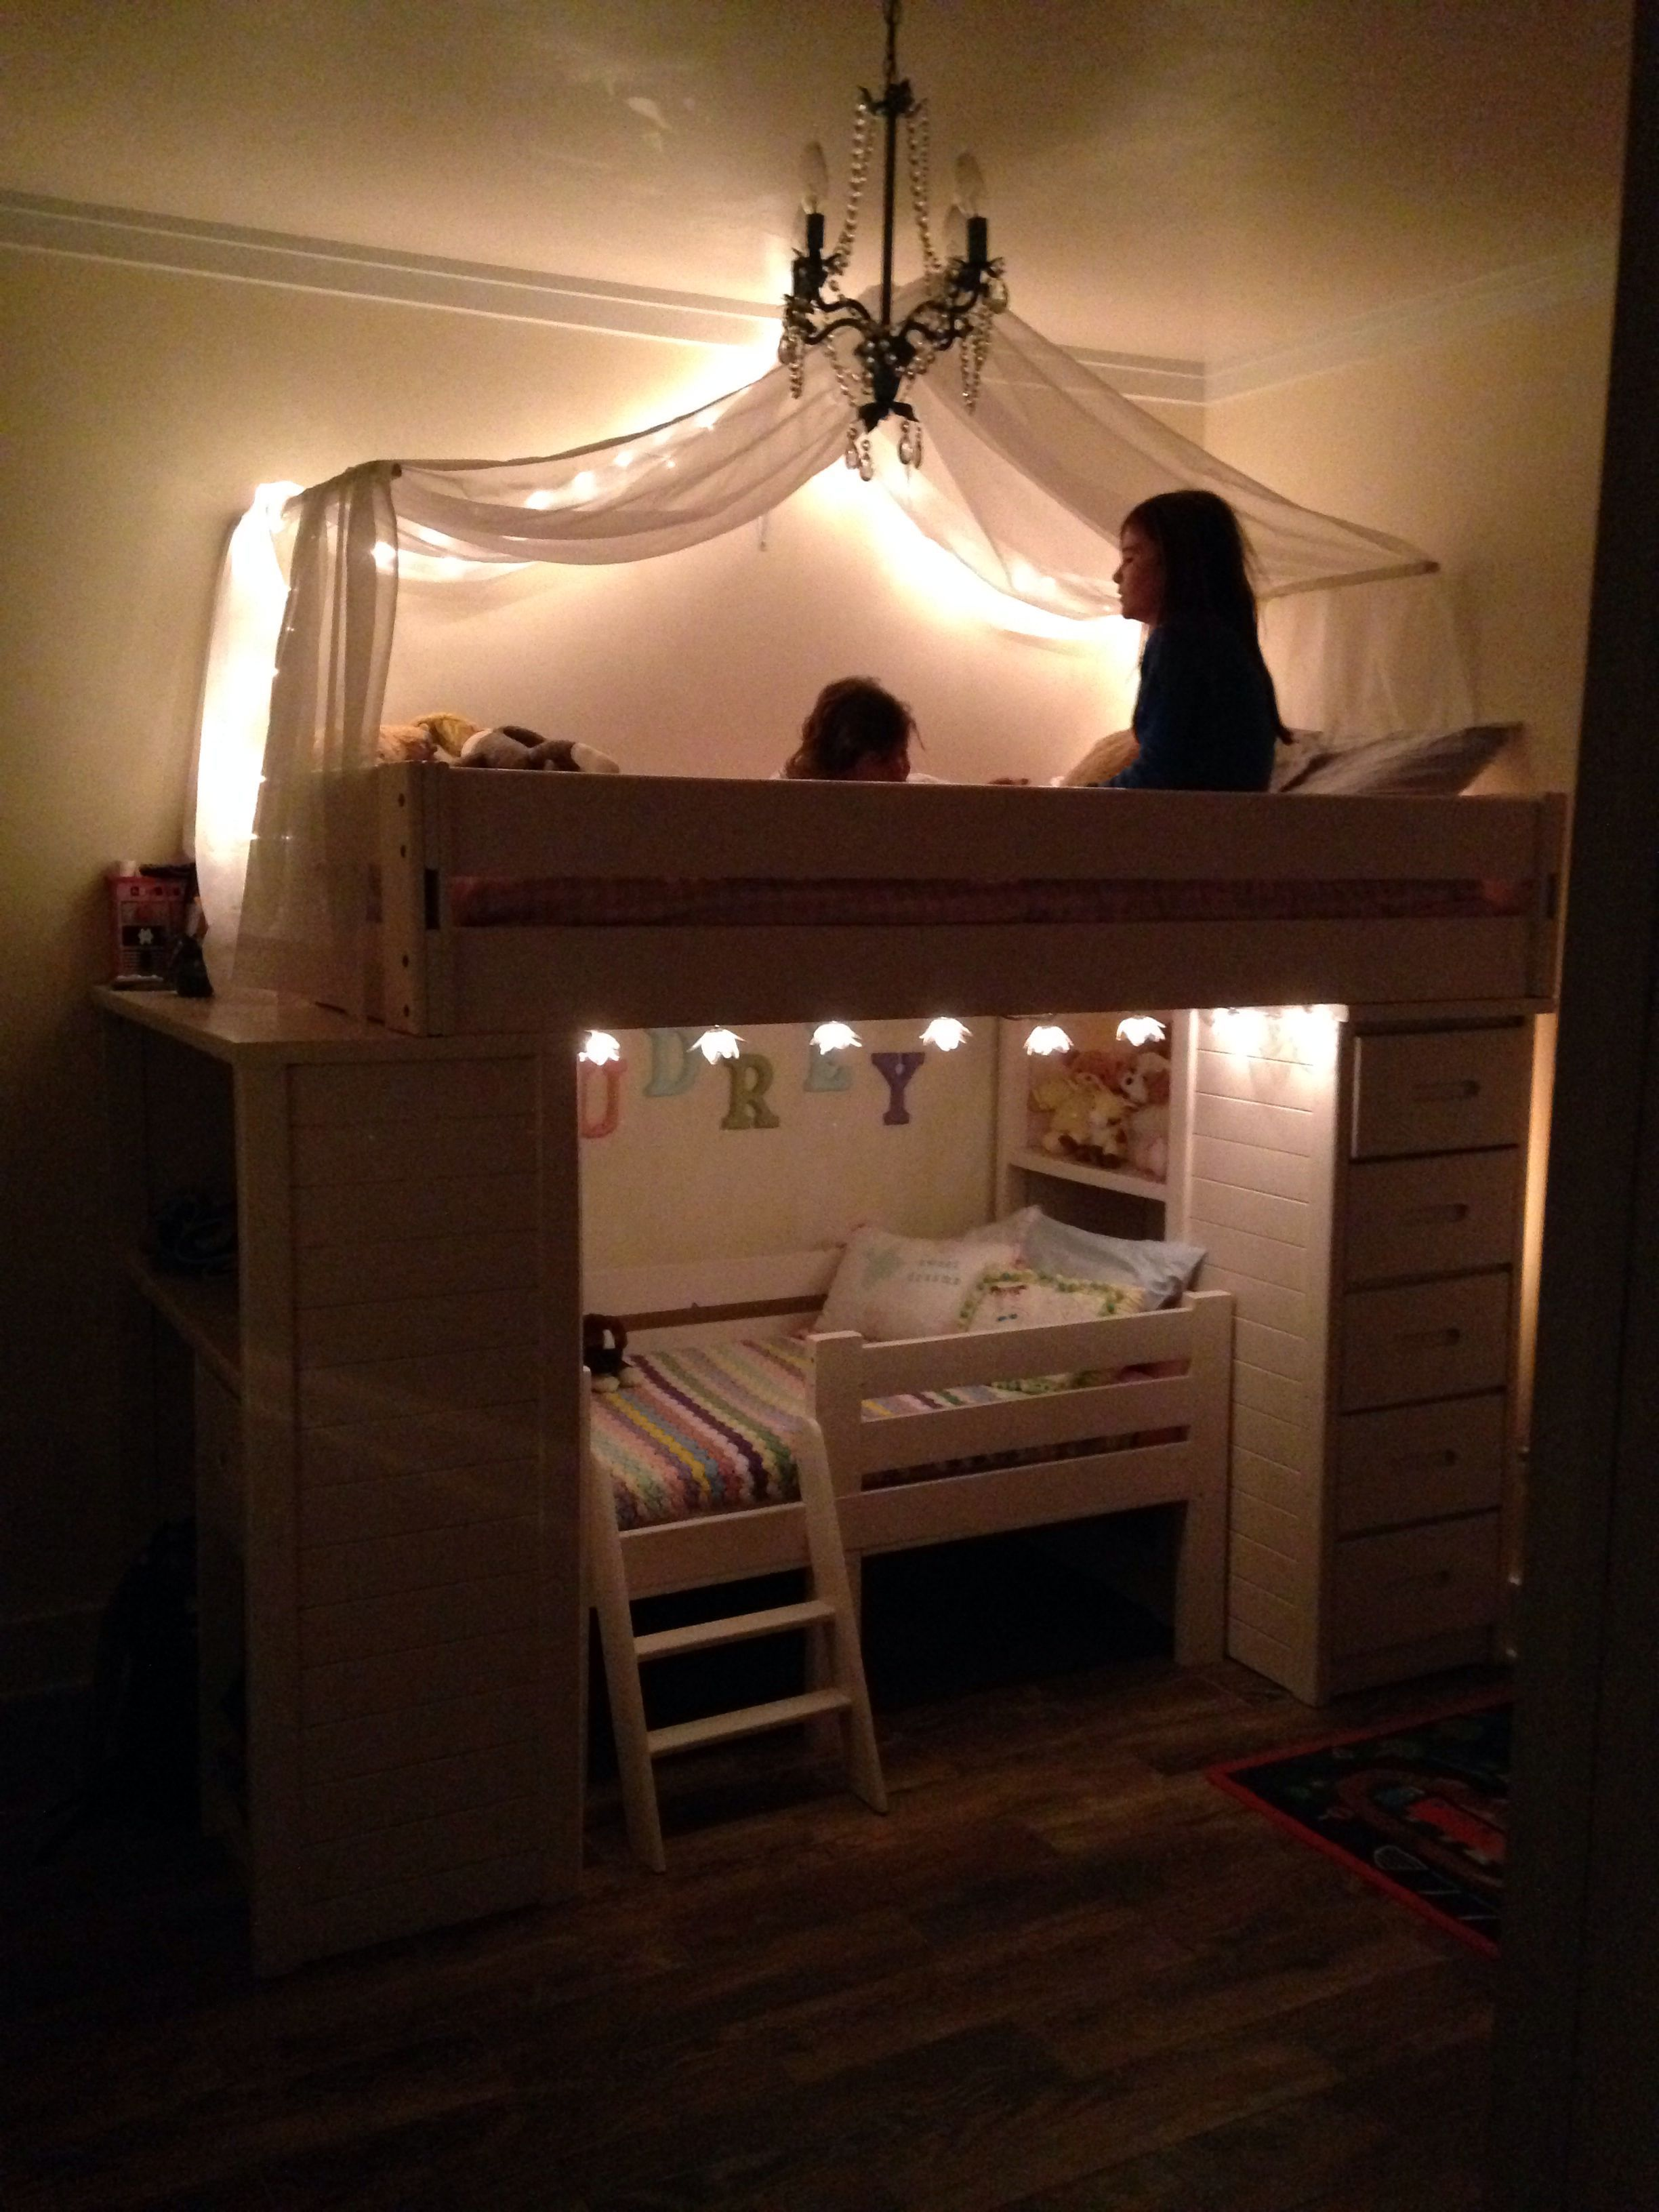 Check Out These Amazing Lighting Tips To Light Up Your Bedroom